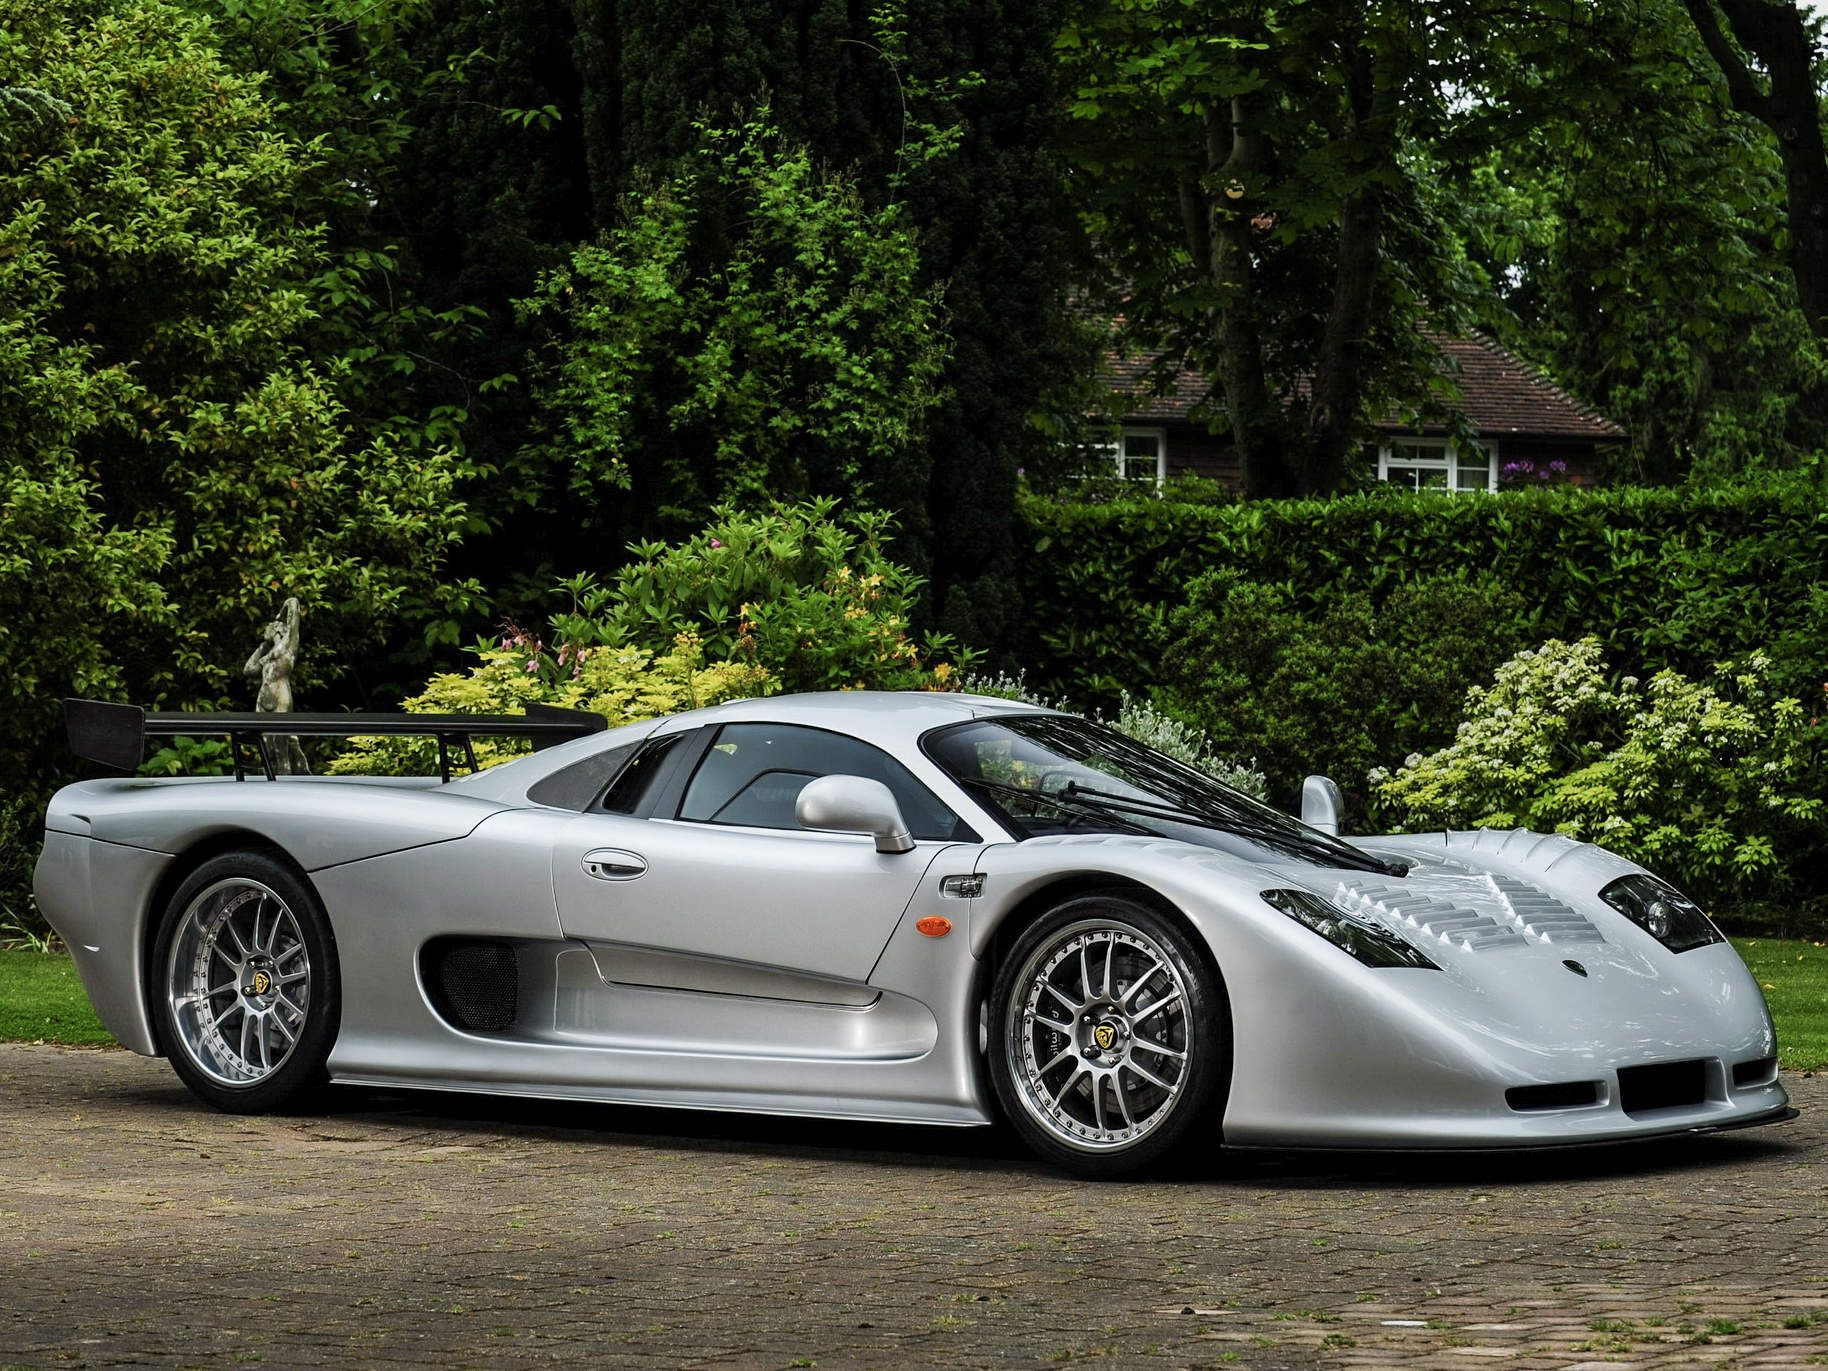 2009 Mosler Mt900s Cars For Sale Fancy Cars Cars